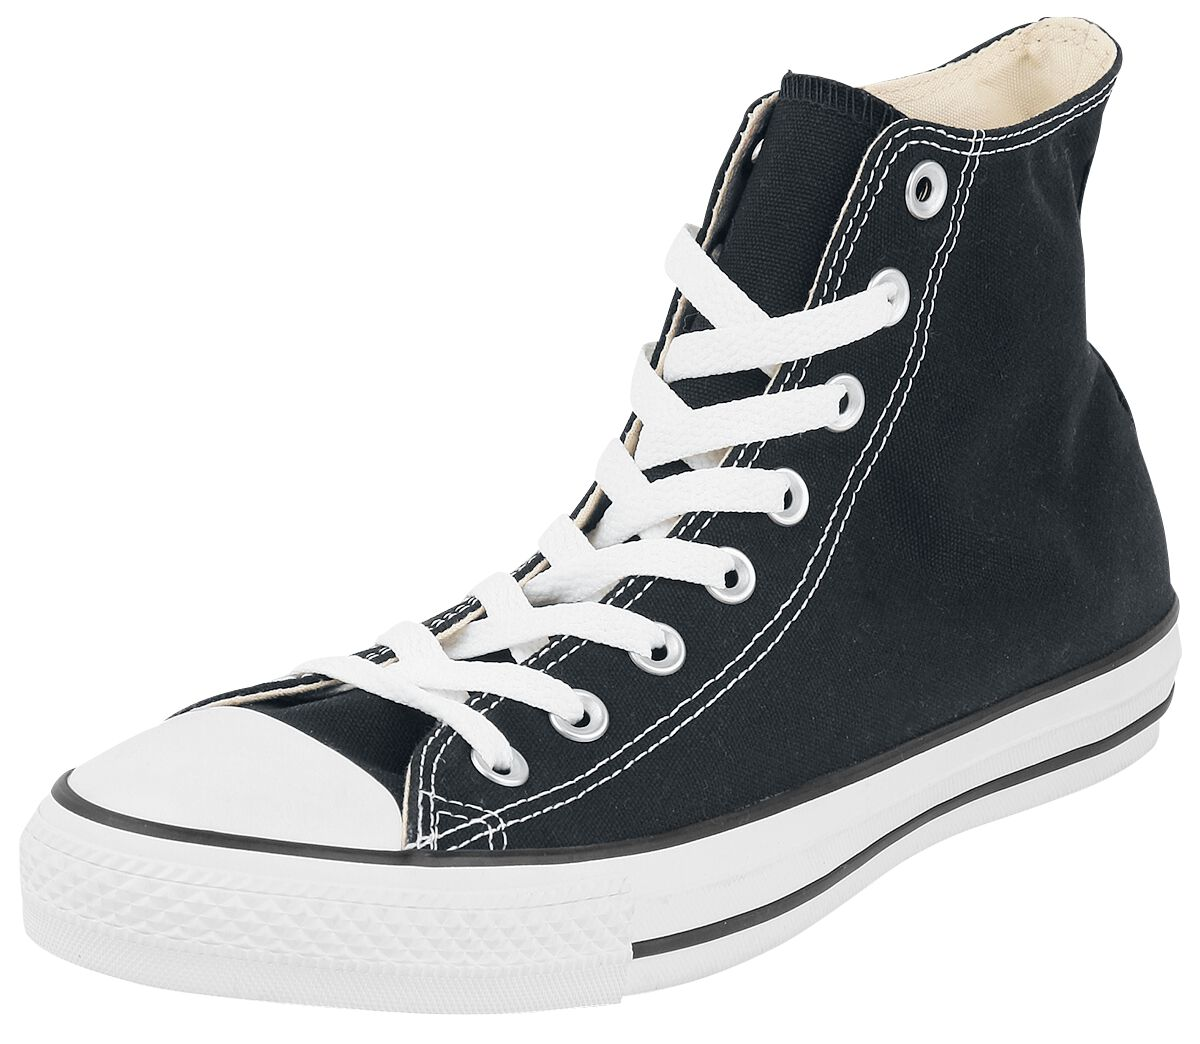 Image of   Converse Chuck Taylor All Star High Sneakers sort